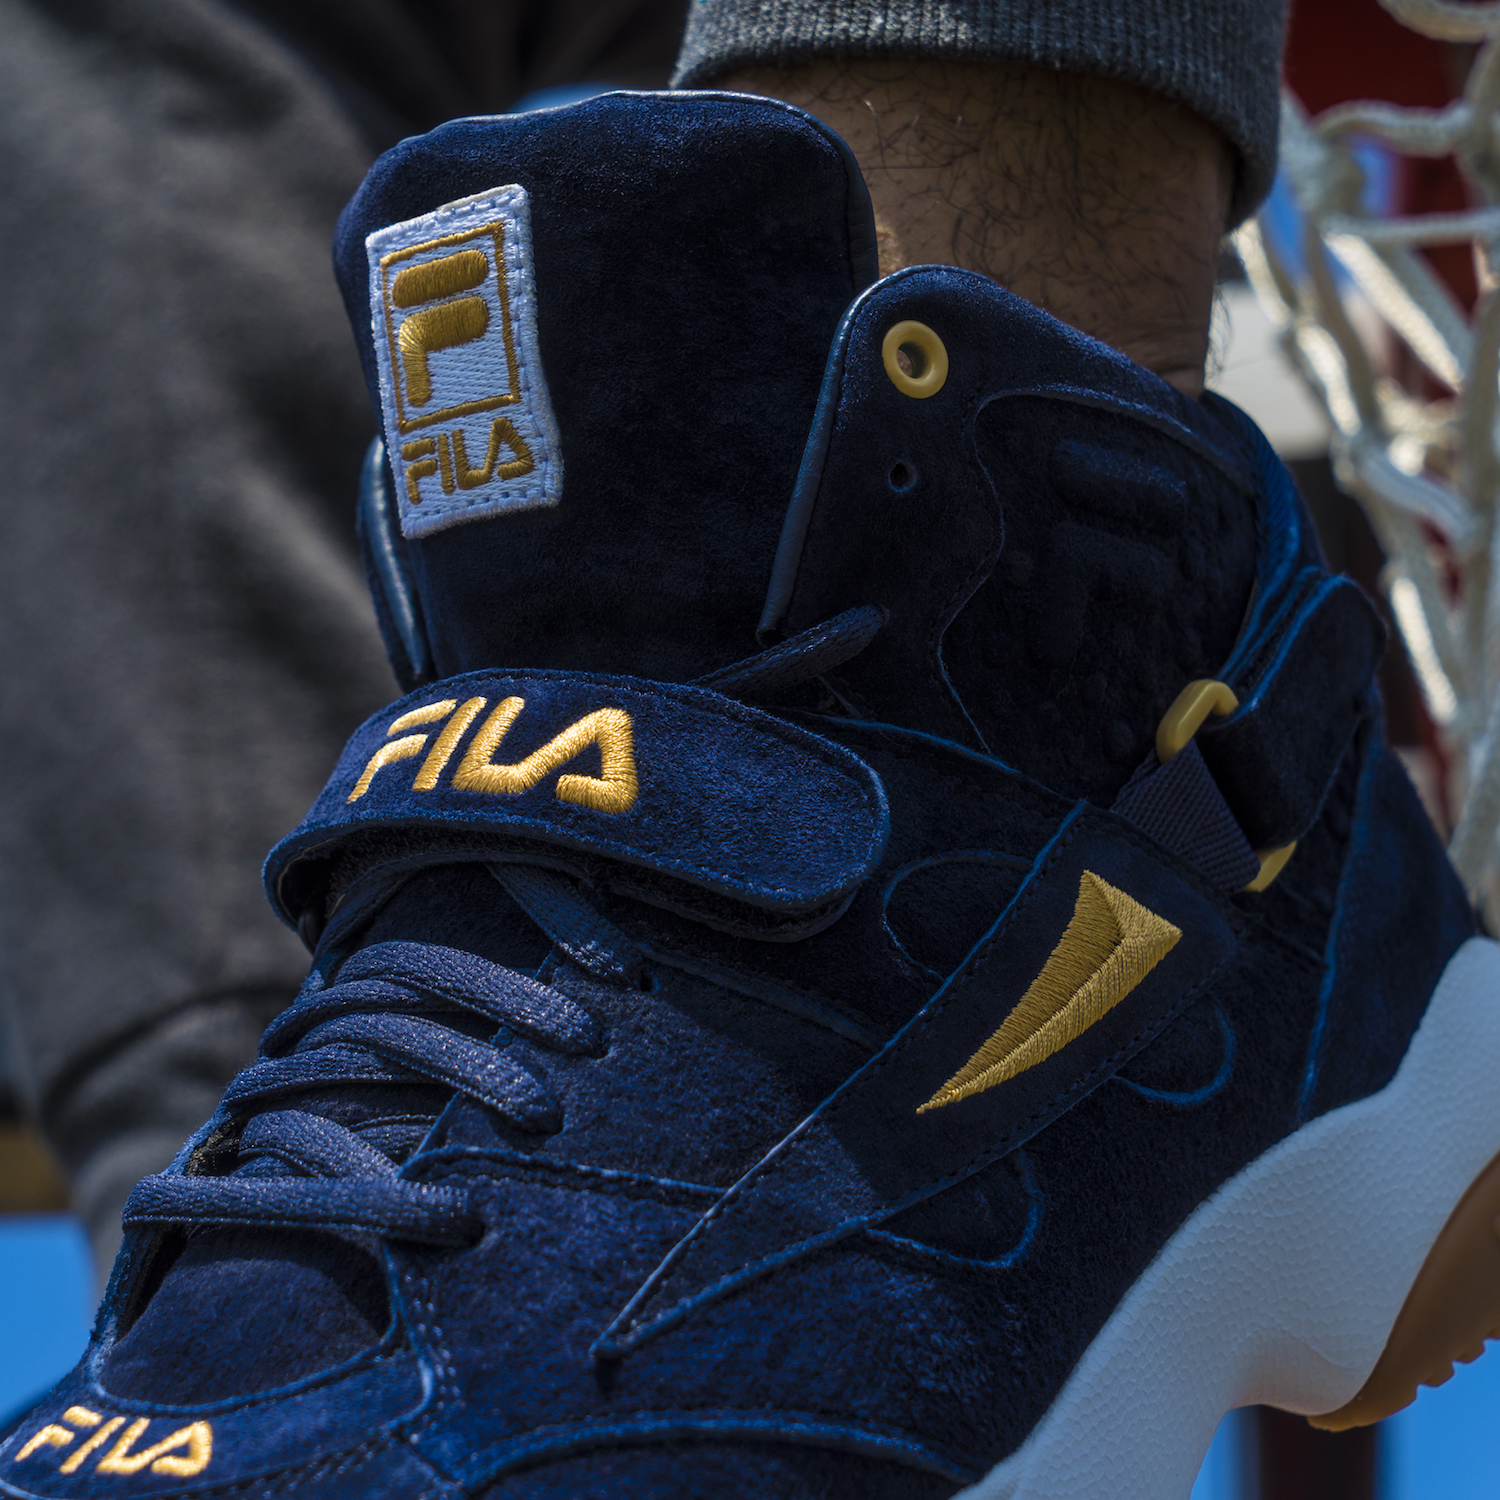 FILA Spoiler royal beginnings 3